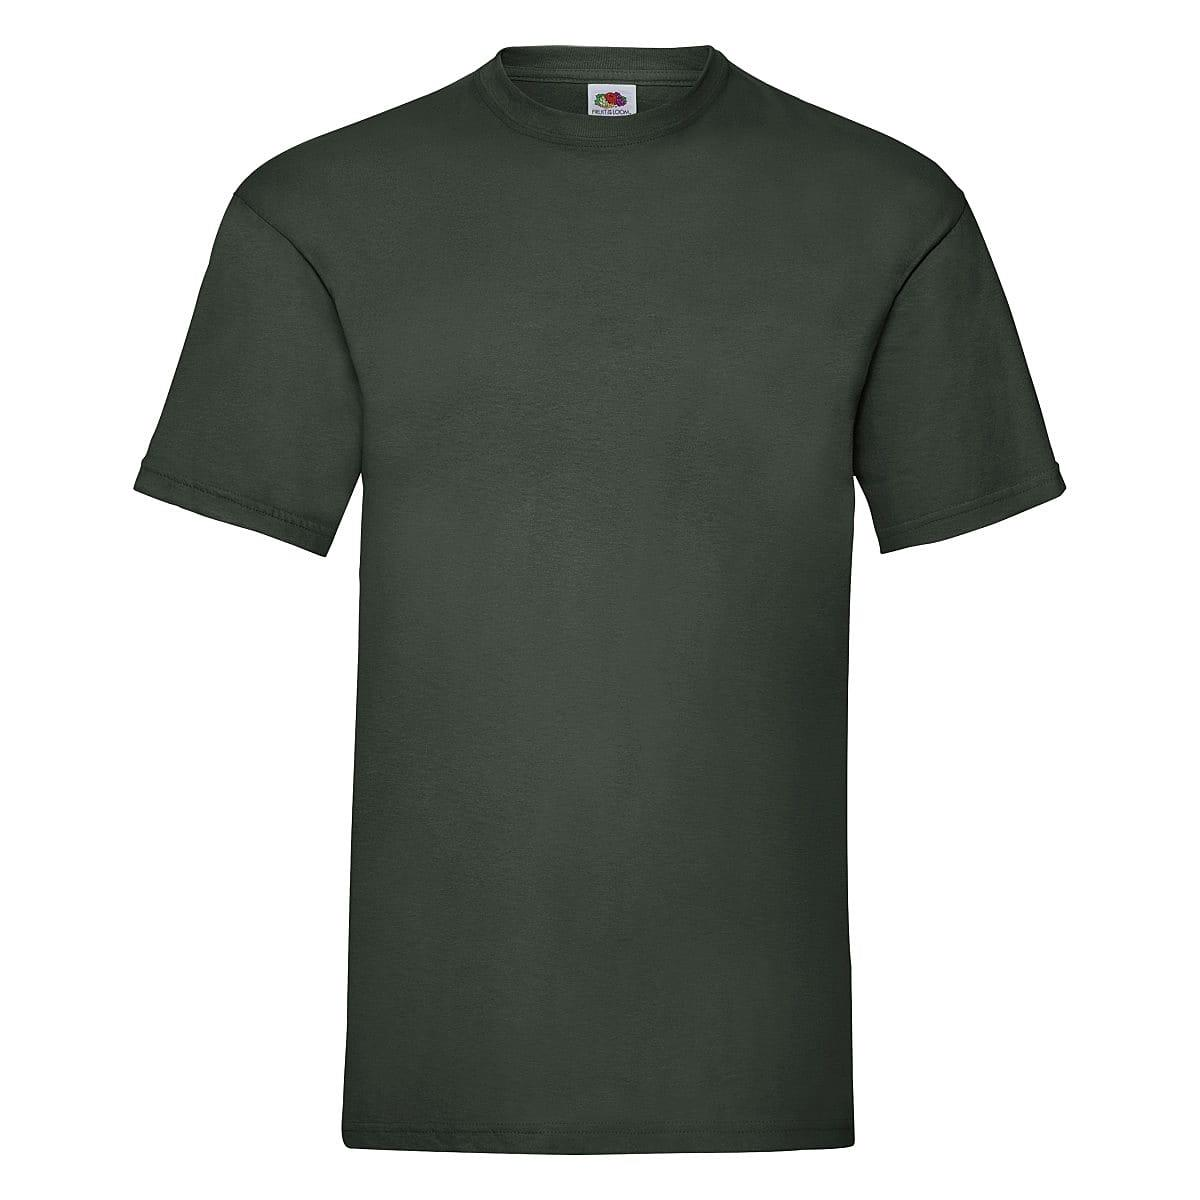 Fruit Of The Loom Valueweight T-Shirt in Bottle Green (Product Code: 61036)